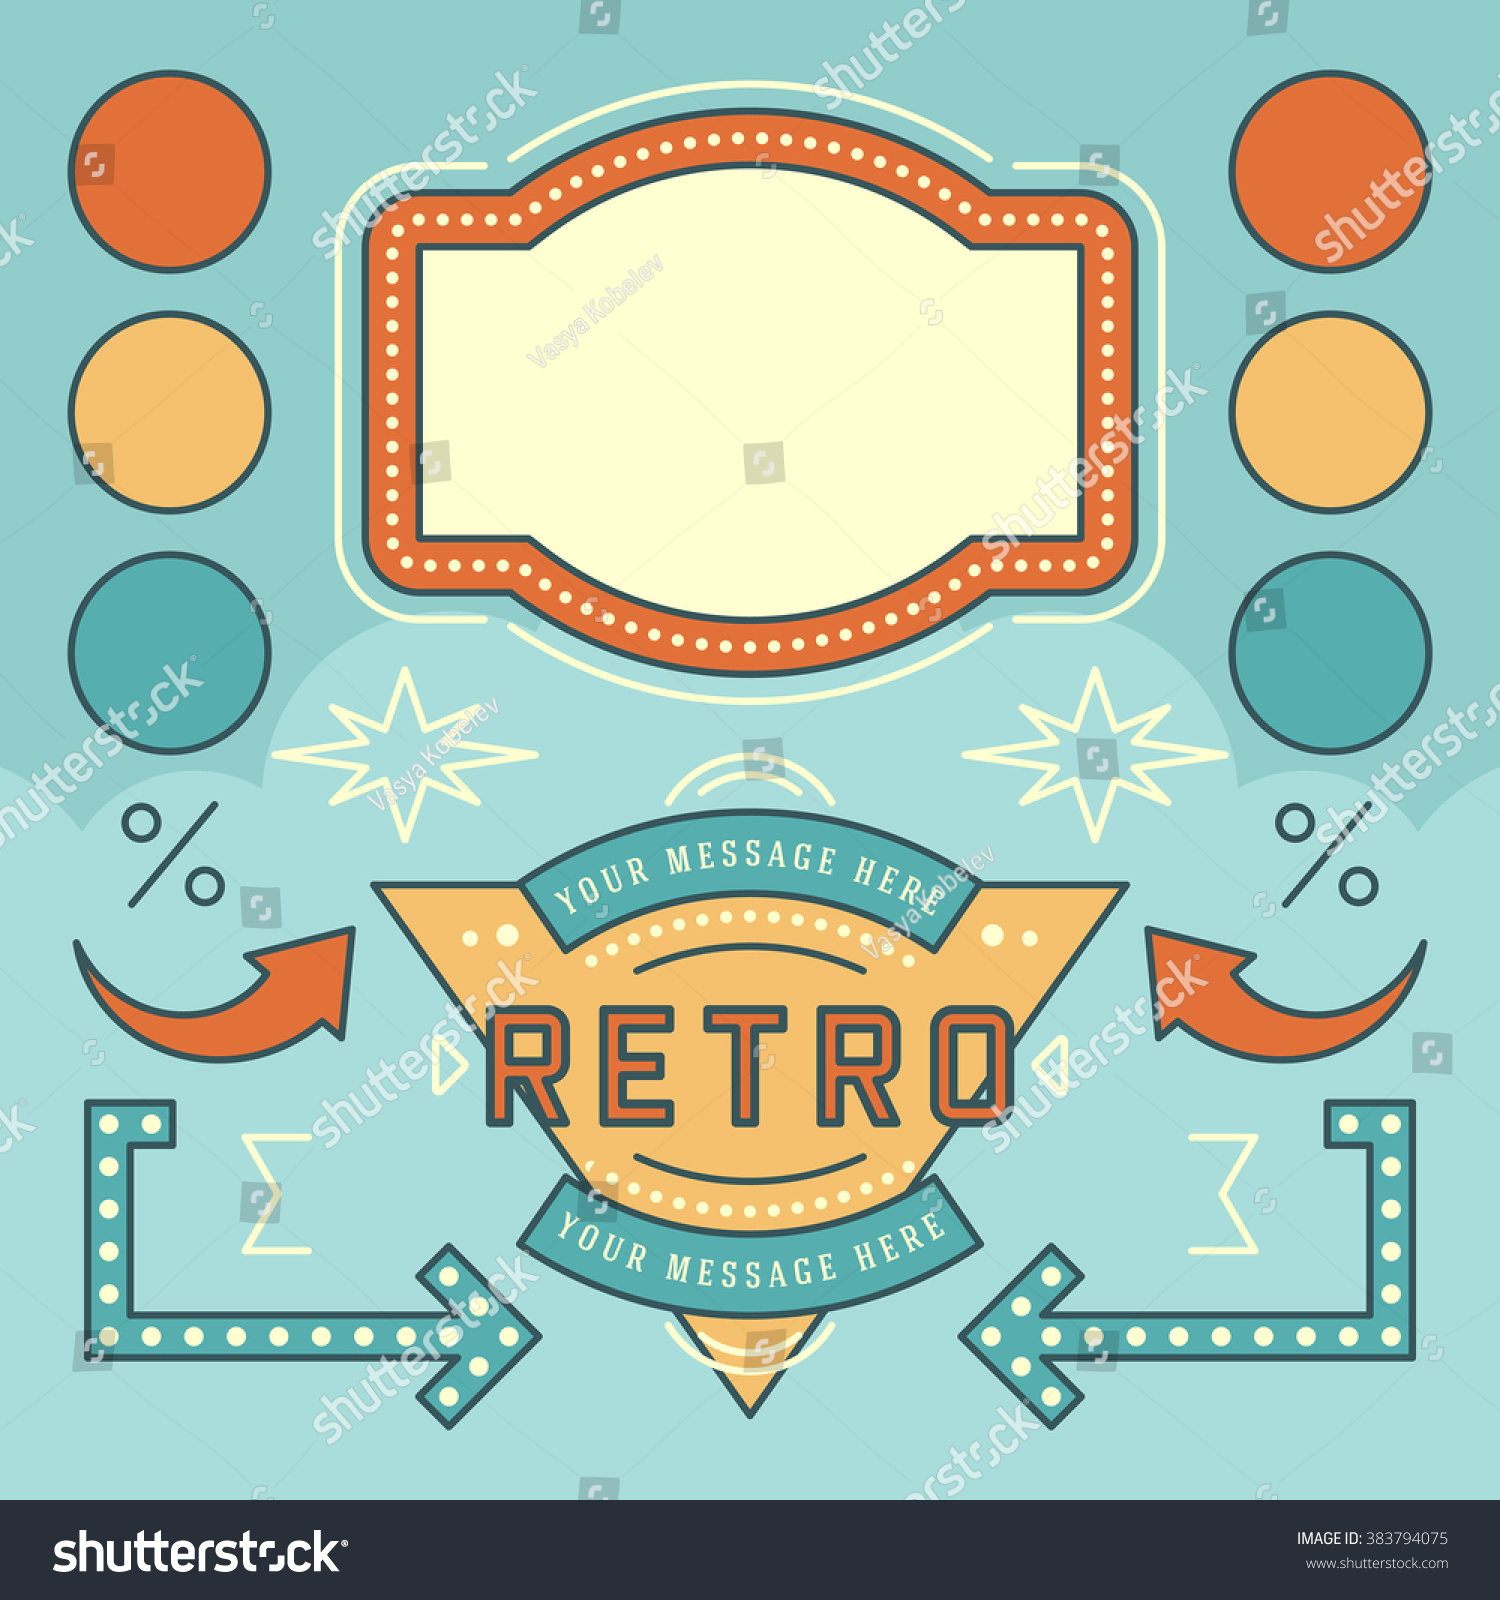 Retro Sign Design